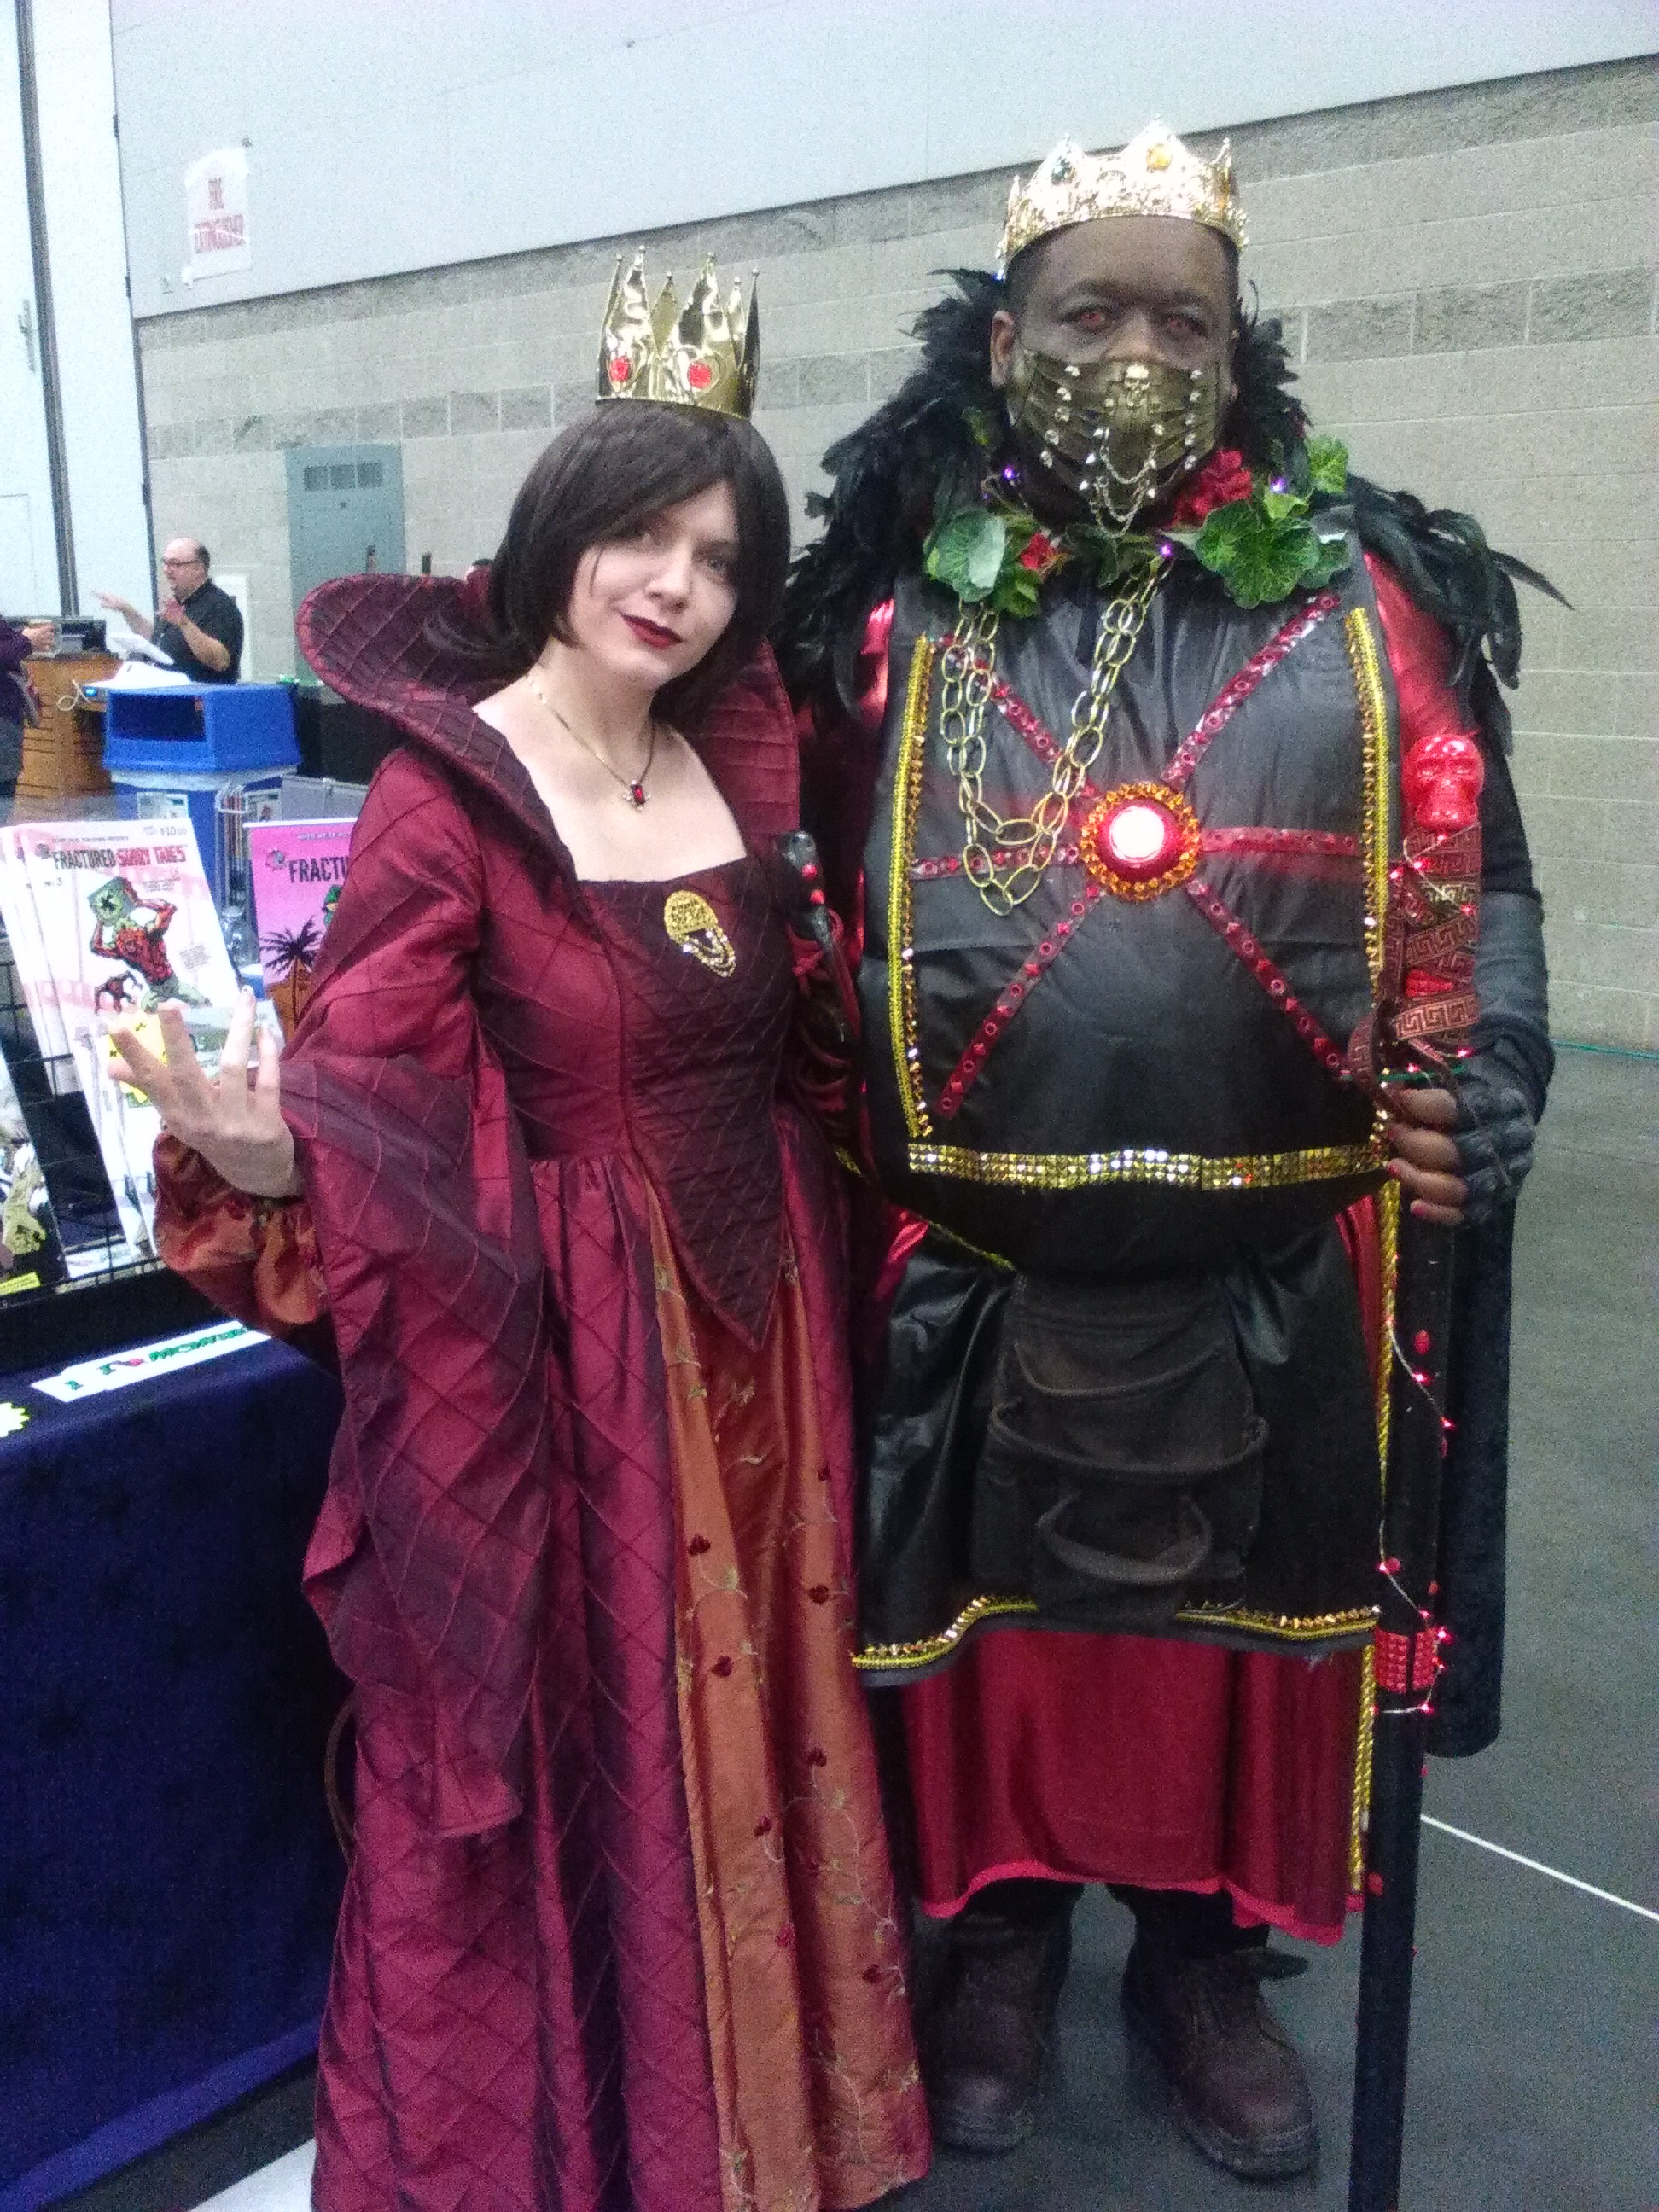 A Midieval Red Queen and King at Wizard World Convention